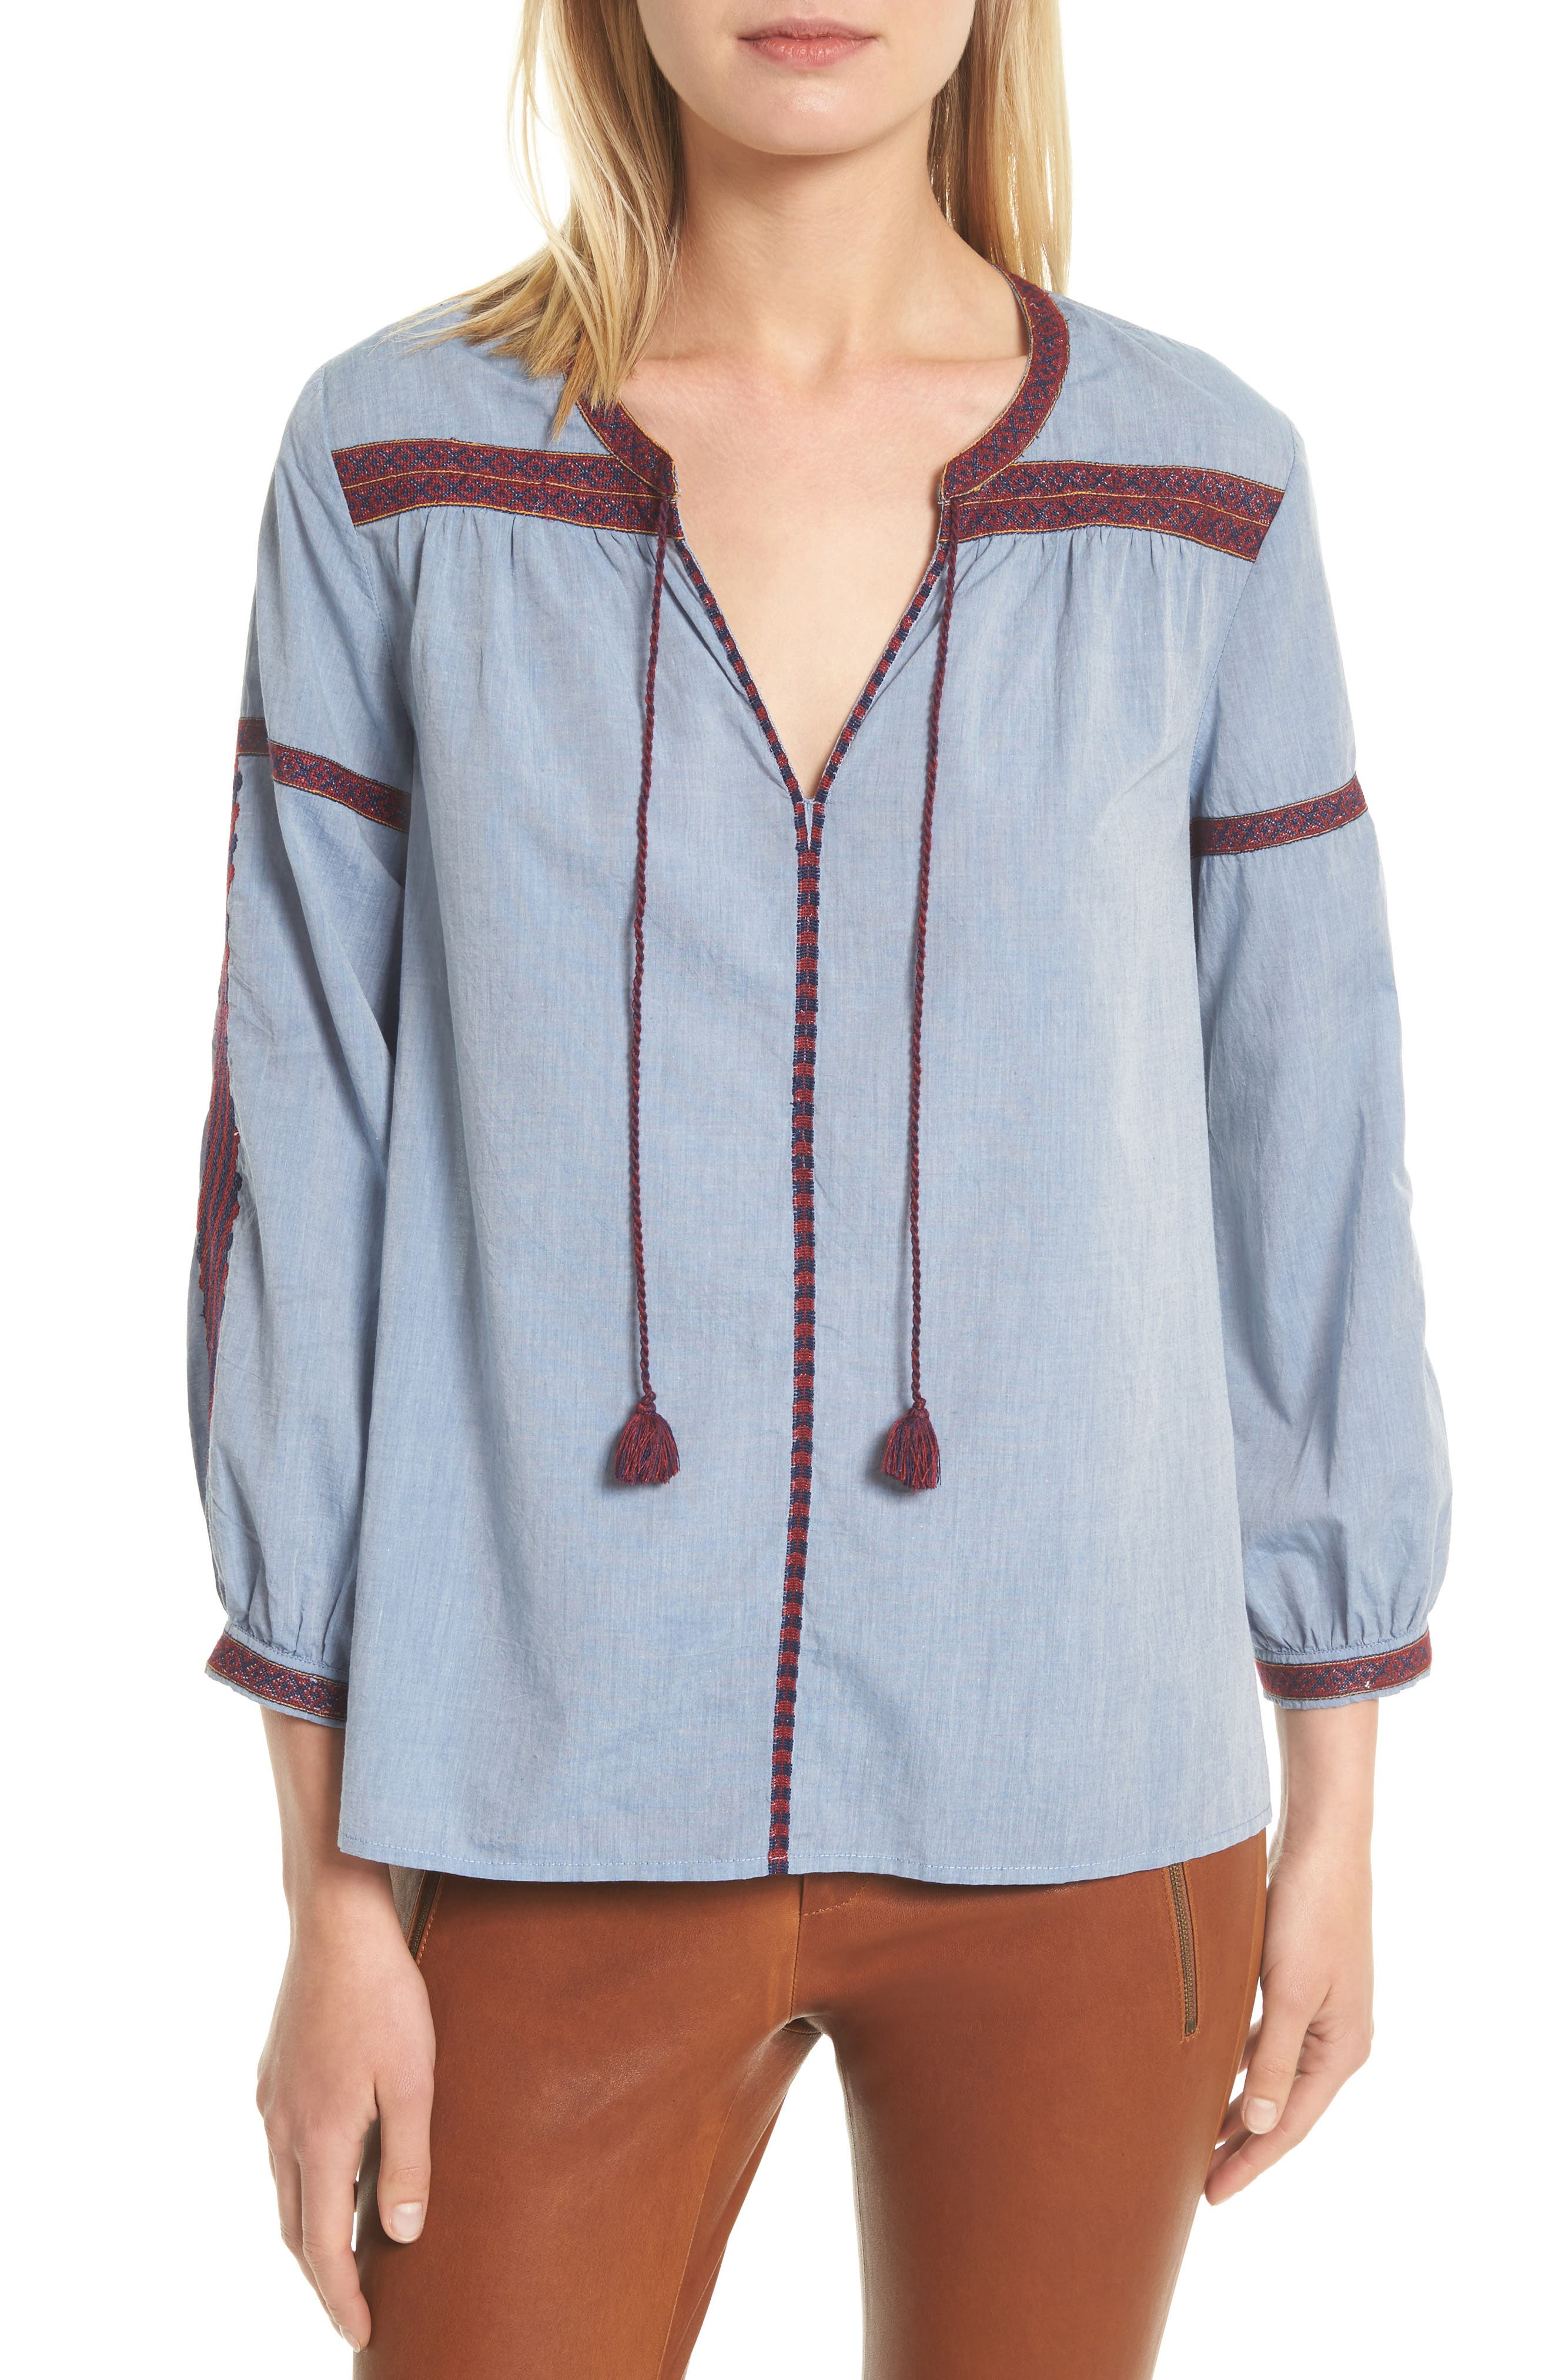 Alternate Image 1 Selected - Joie Marlen Embroidered Chambray Top